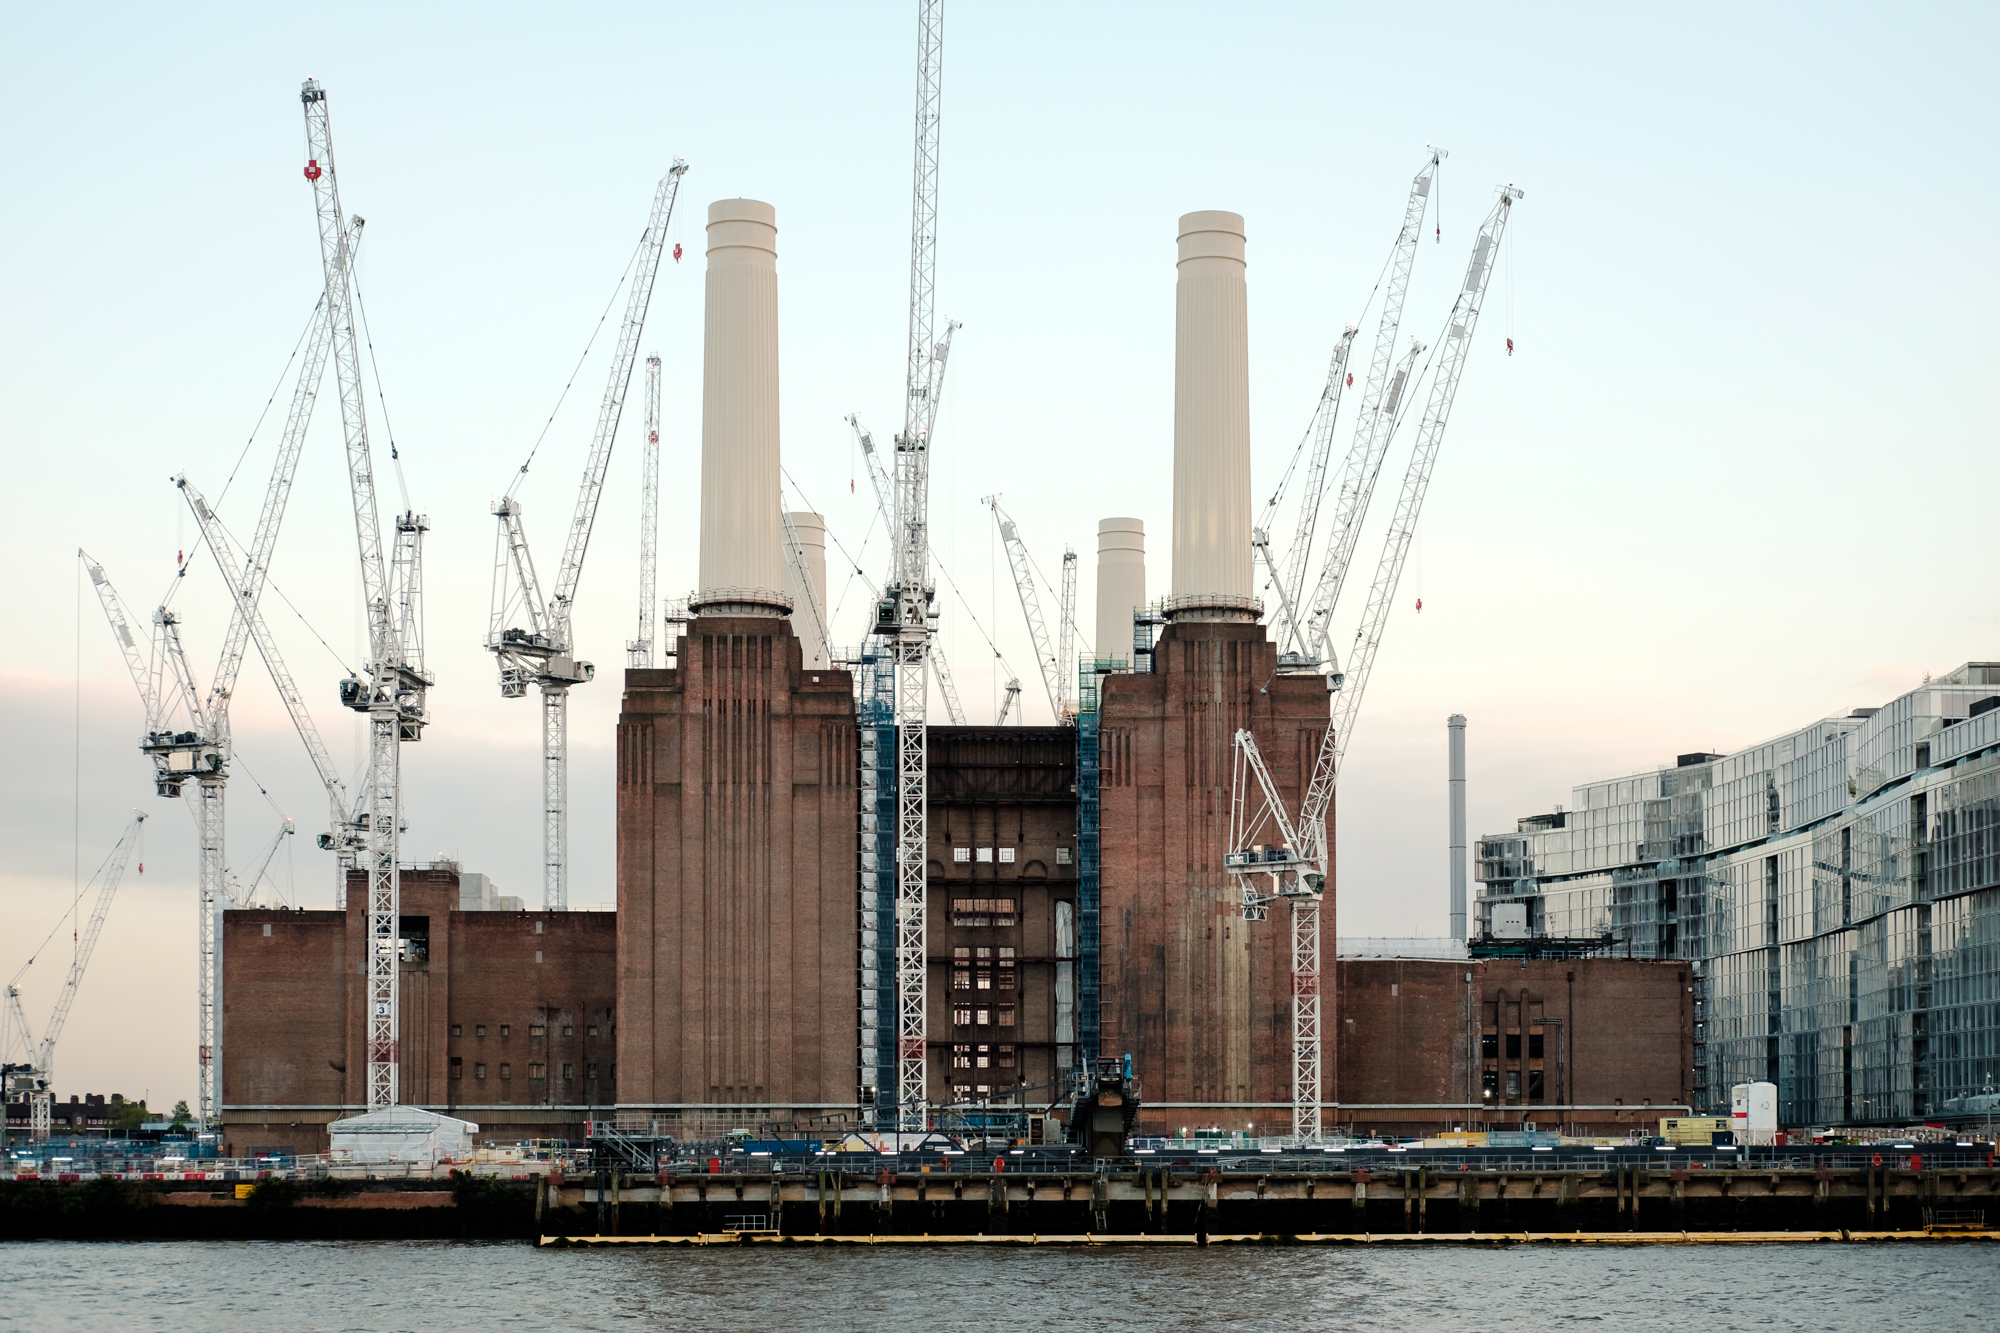 London Chrome photo of Battersea Power Station by Trevor Sherwin